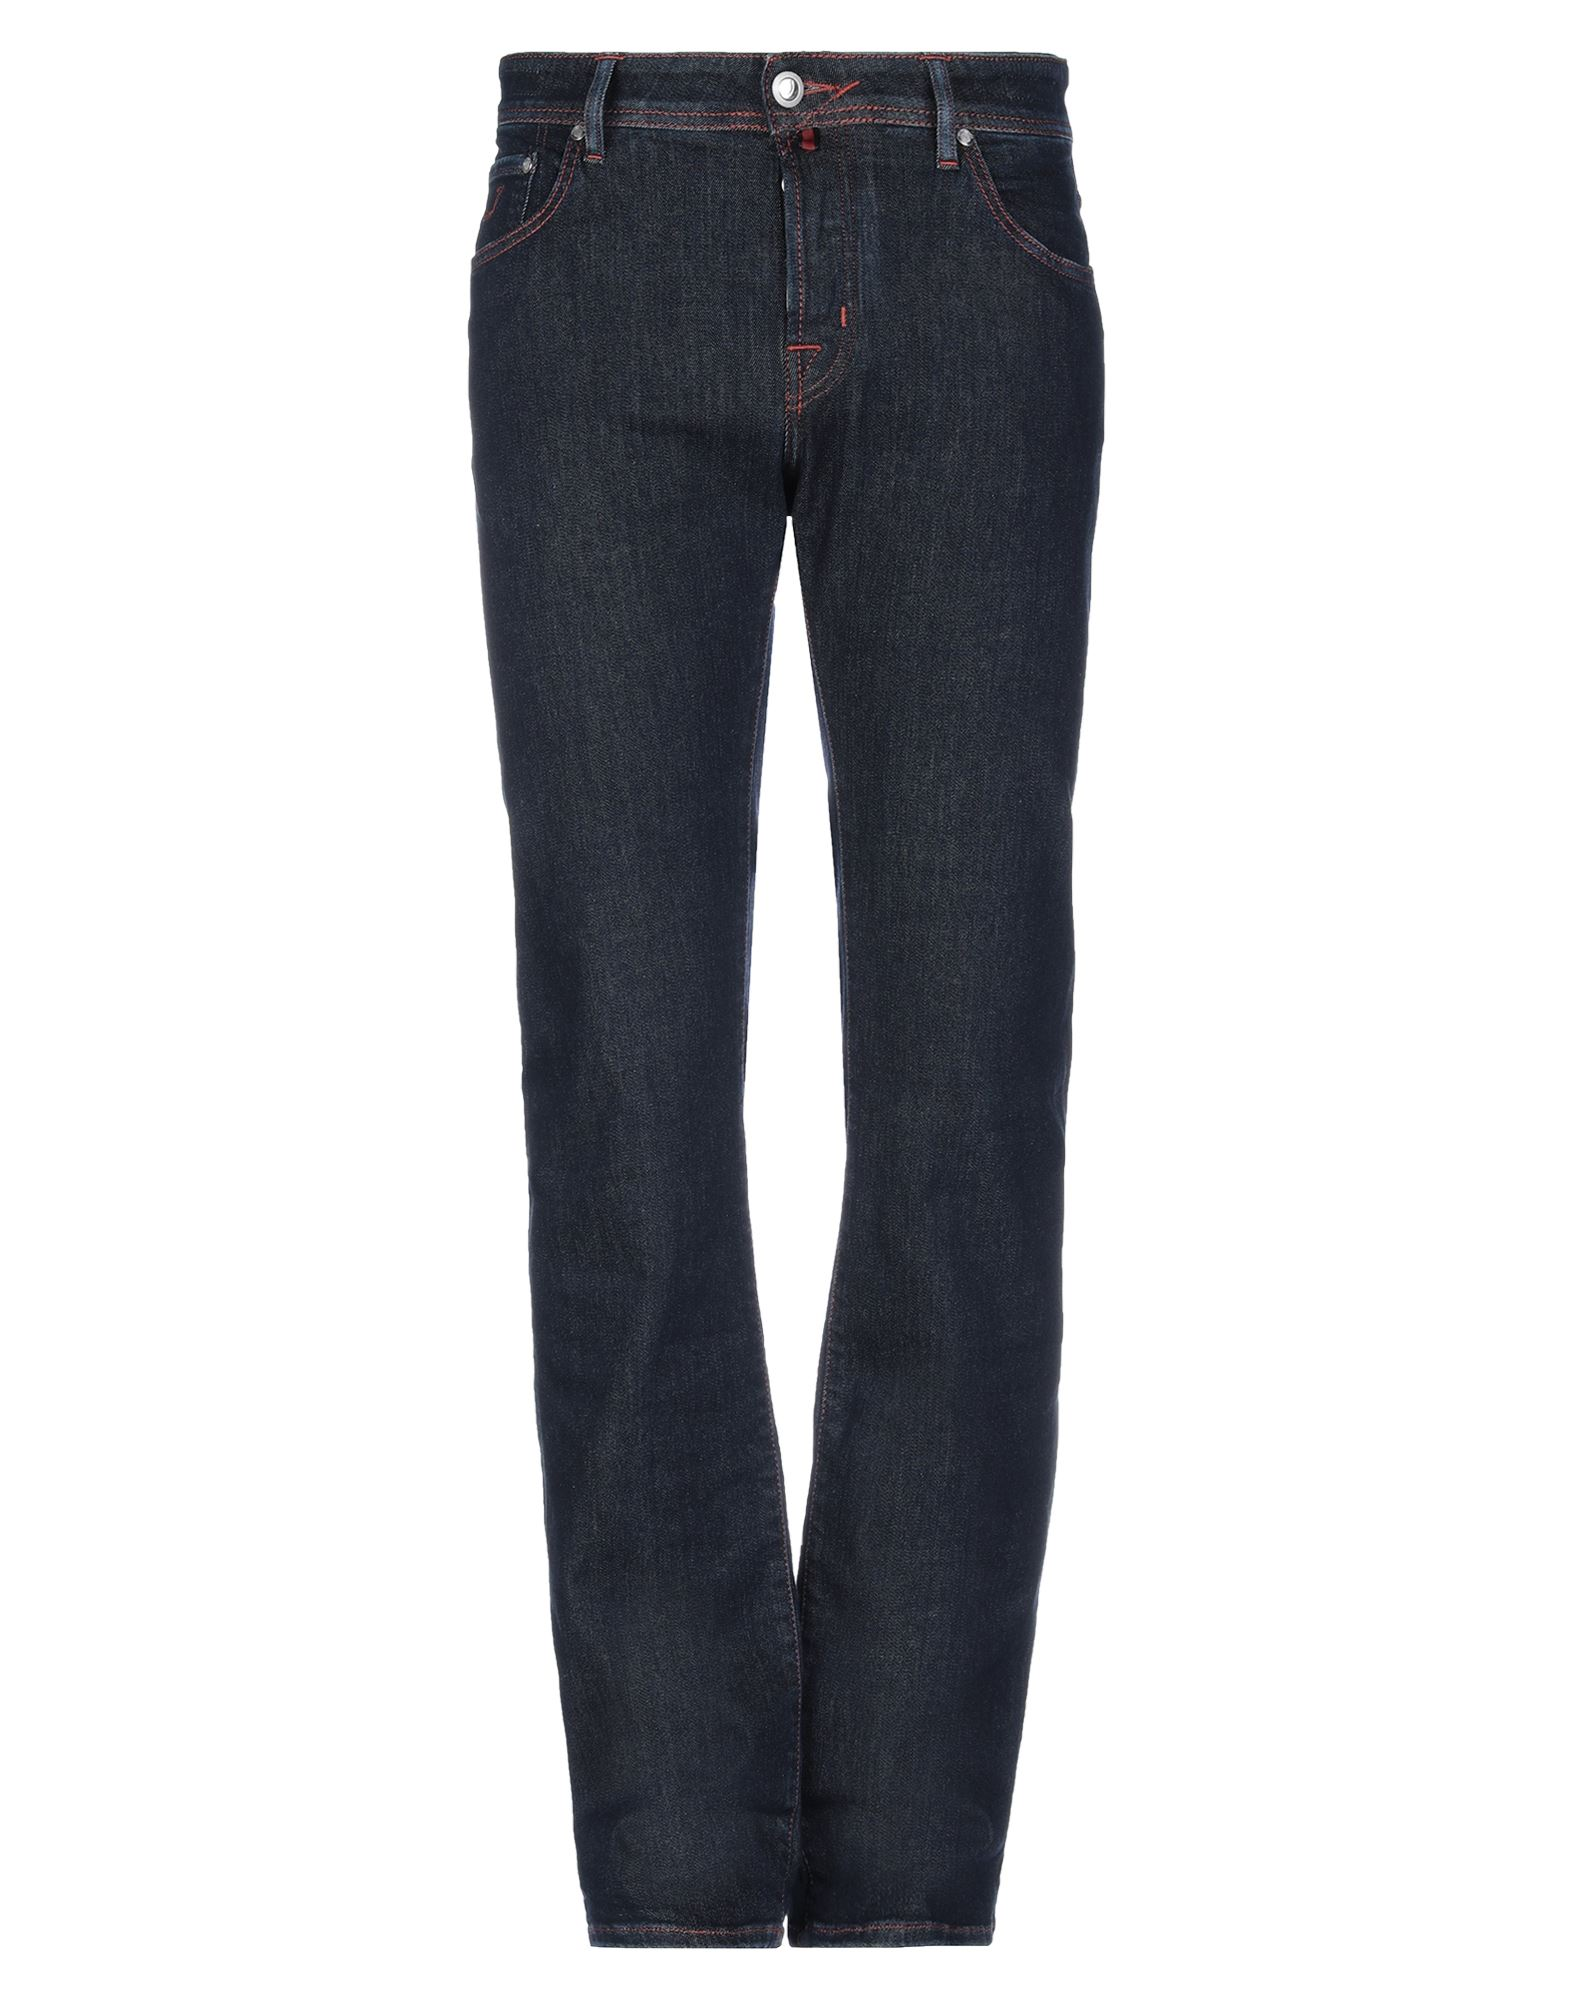 JACOB COHЁN Denim pants - Item 42826527